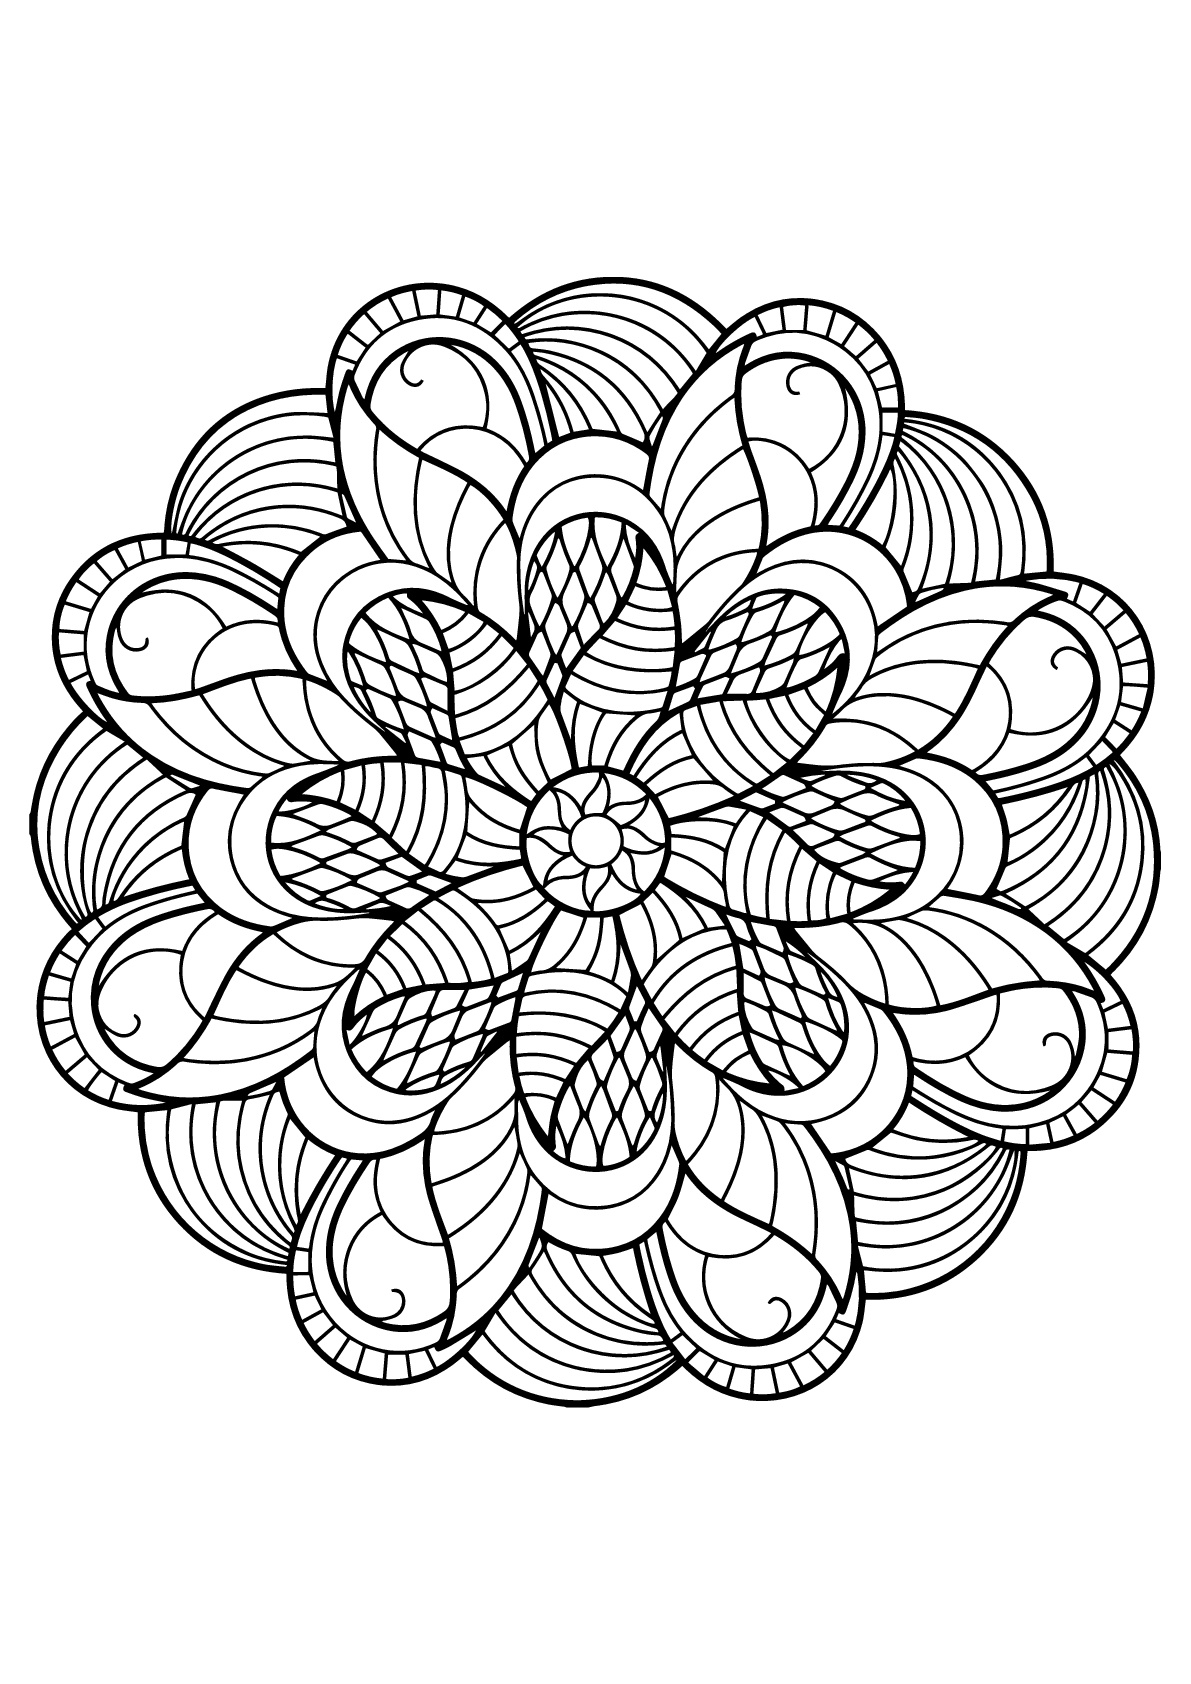 Mandalas coloring page with few details for kids